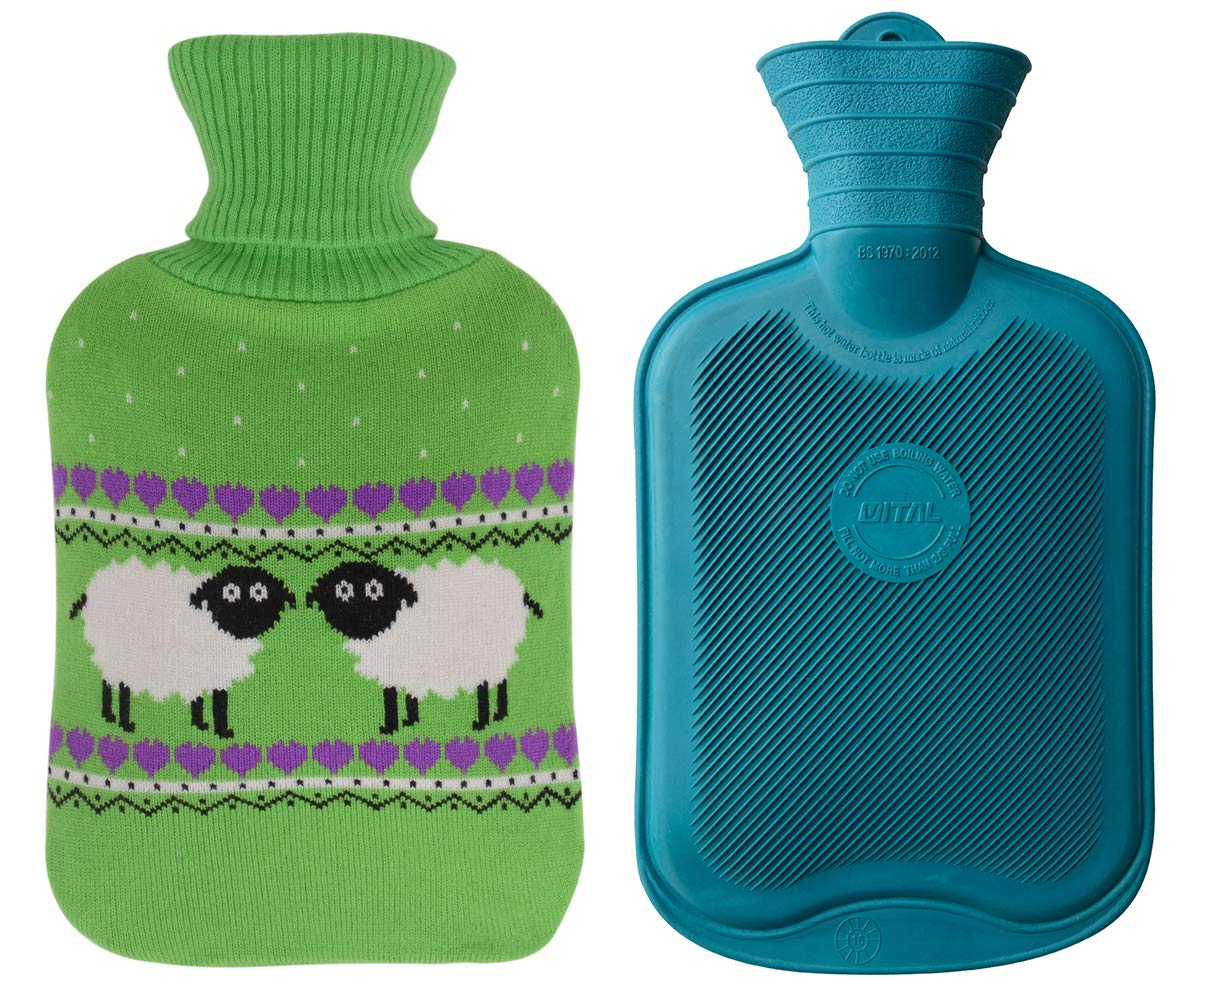 Premium Classic Rubber Hot Water Bottle and Cute Animal Embroidery Knit Cover (2L, Jasper/Green with Sheep)